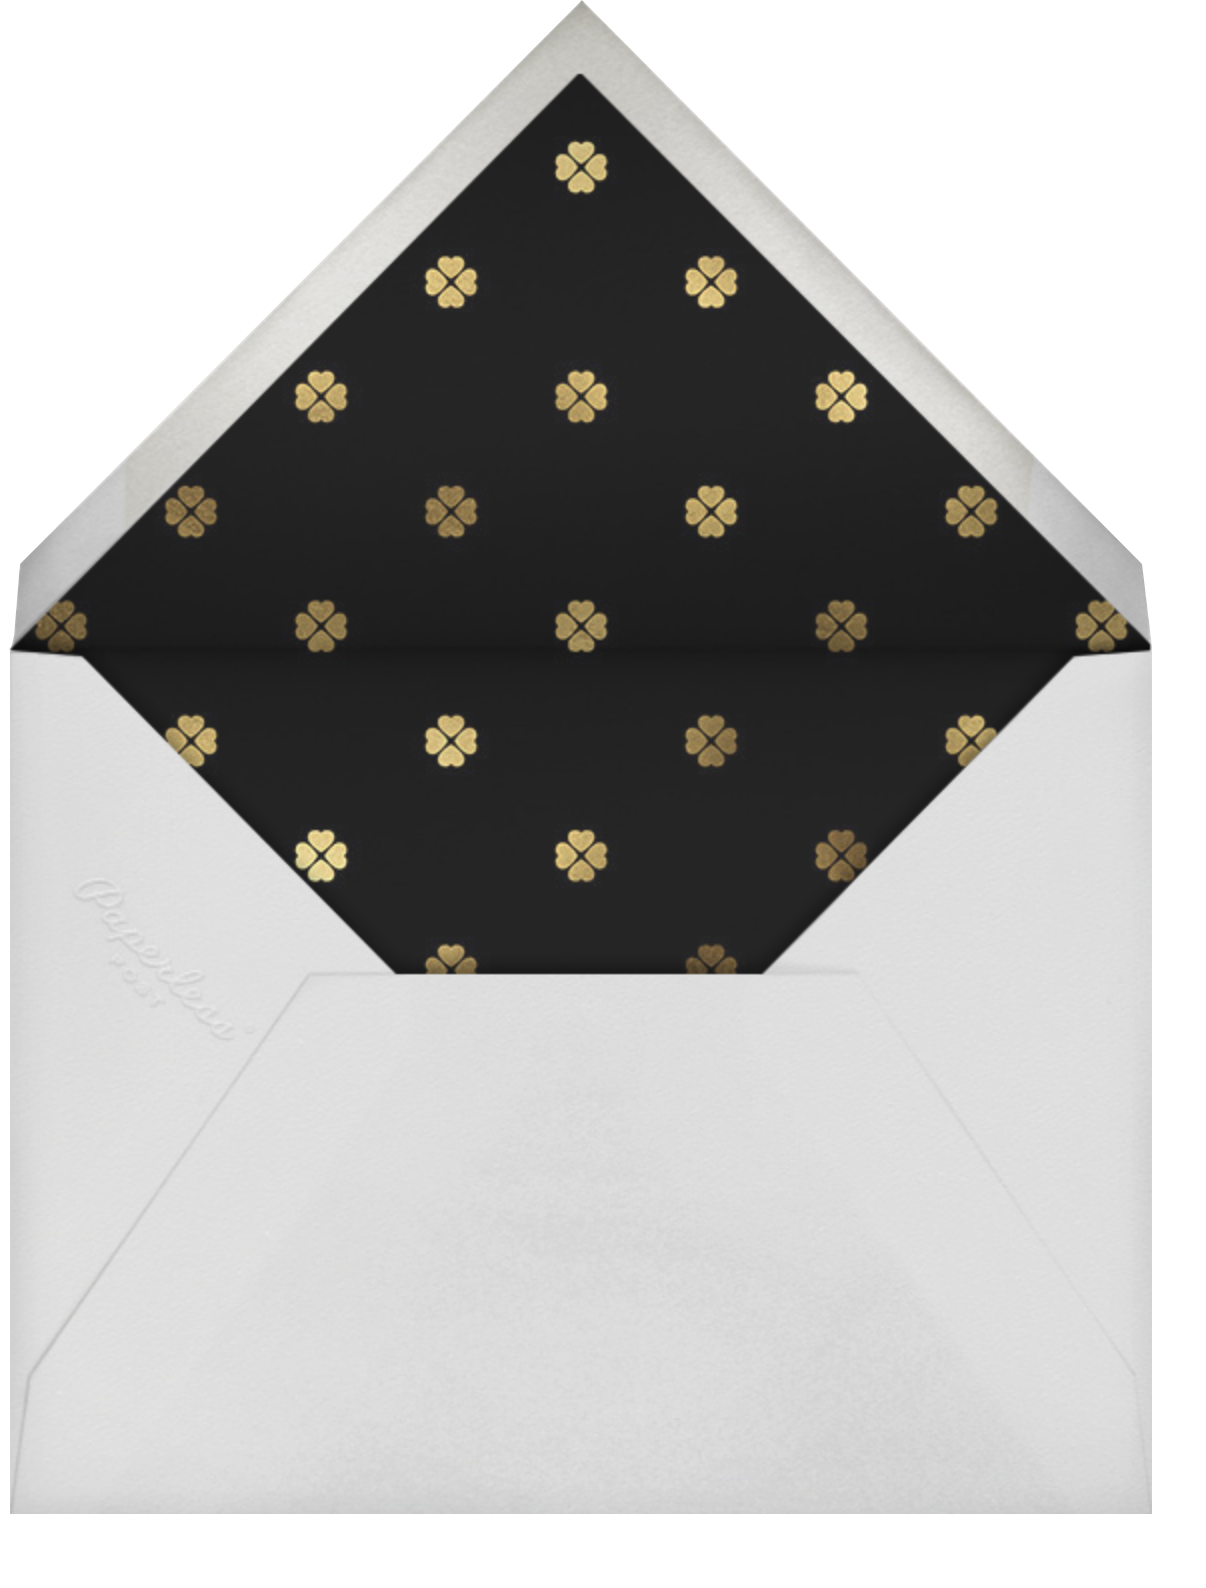 Let's Groove (Invitation) - White - kate spade new york - All - envelope back